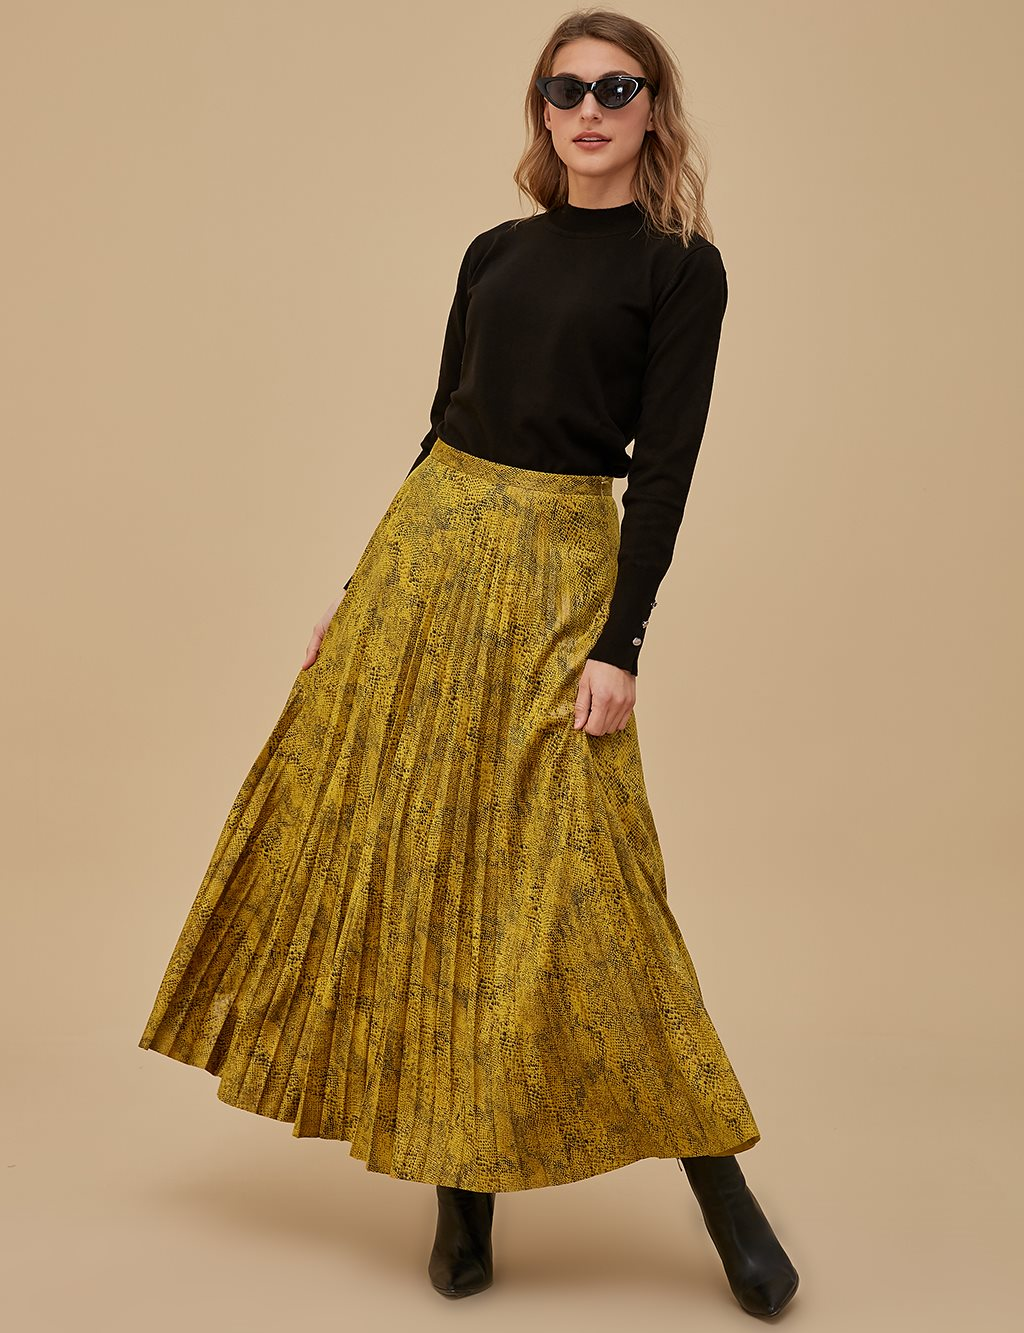 Artificial Leather Skirt A9 12061 Mustard